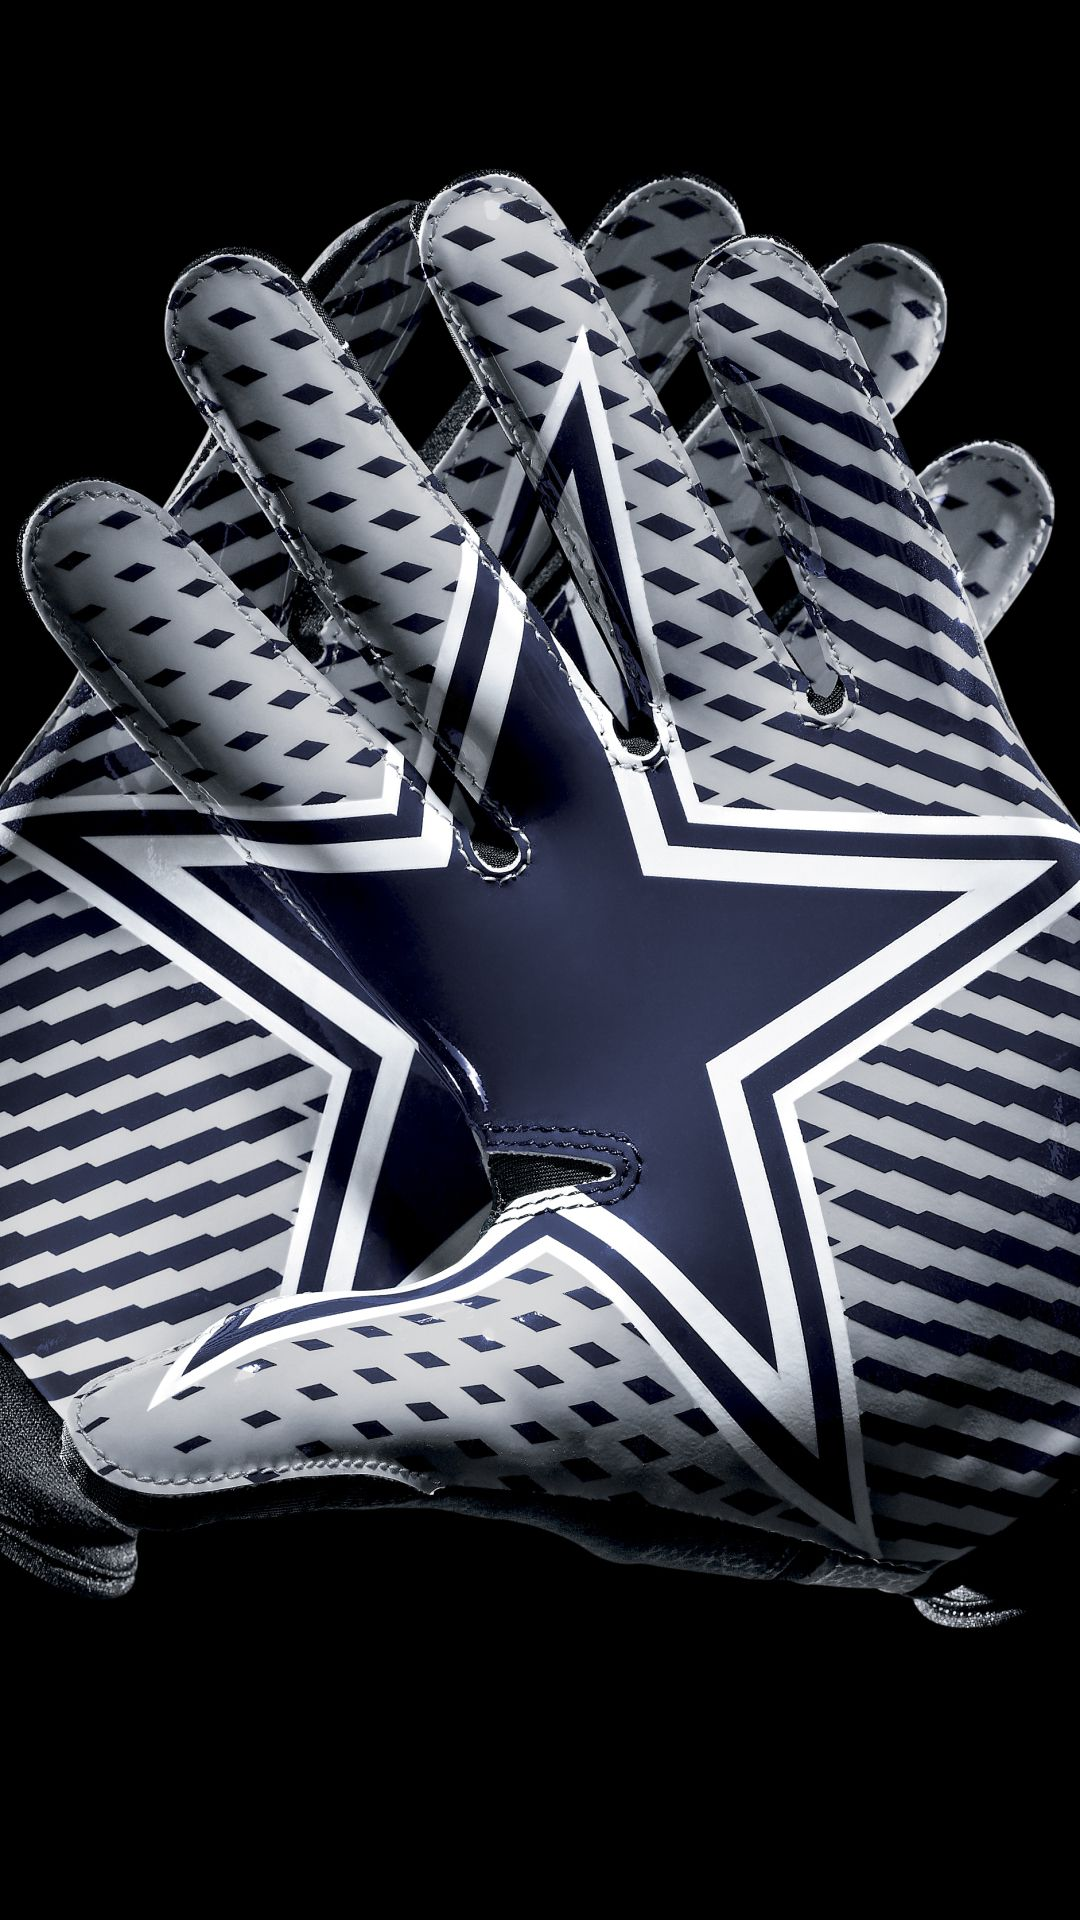 Dallas Cowboys Wallpaper Home Screen dallas cowboys